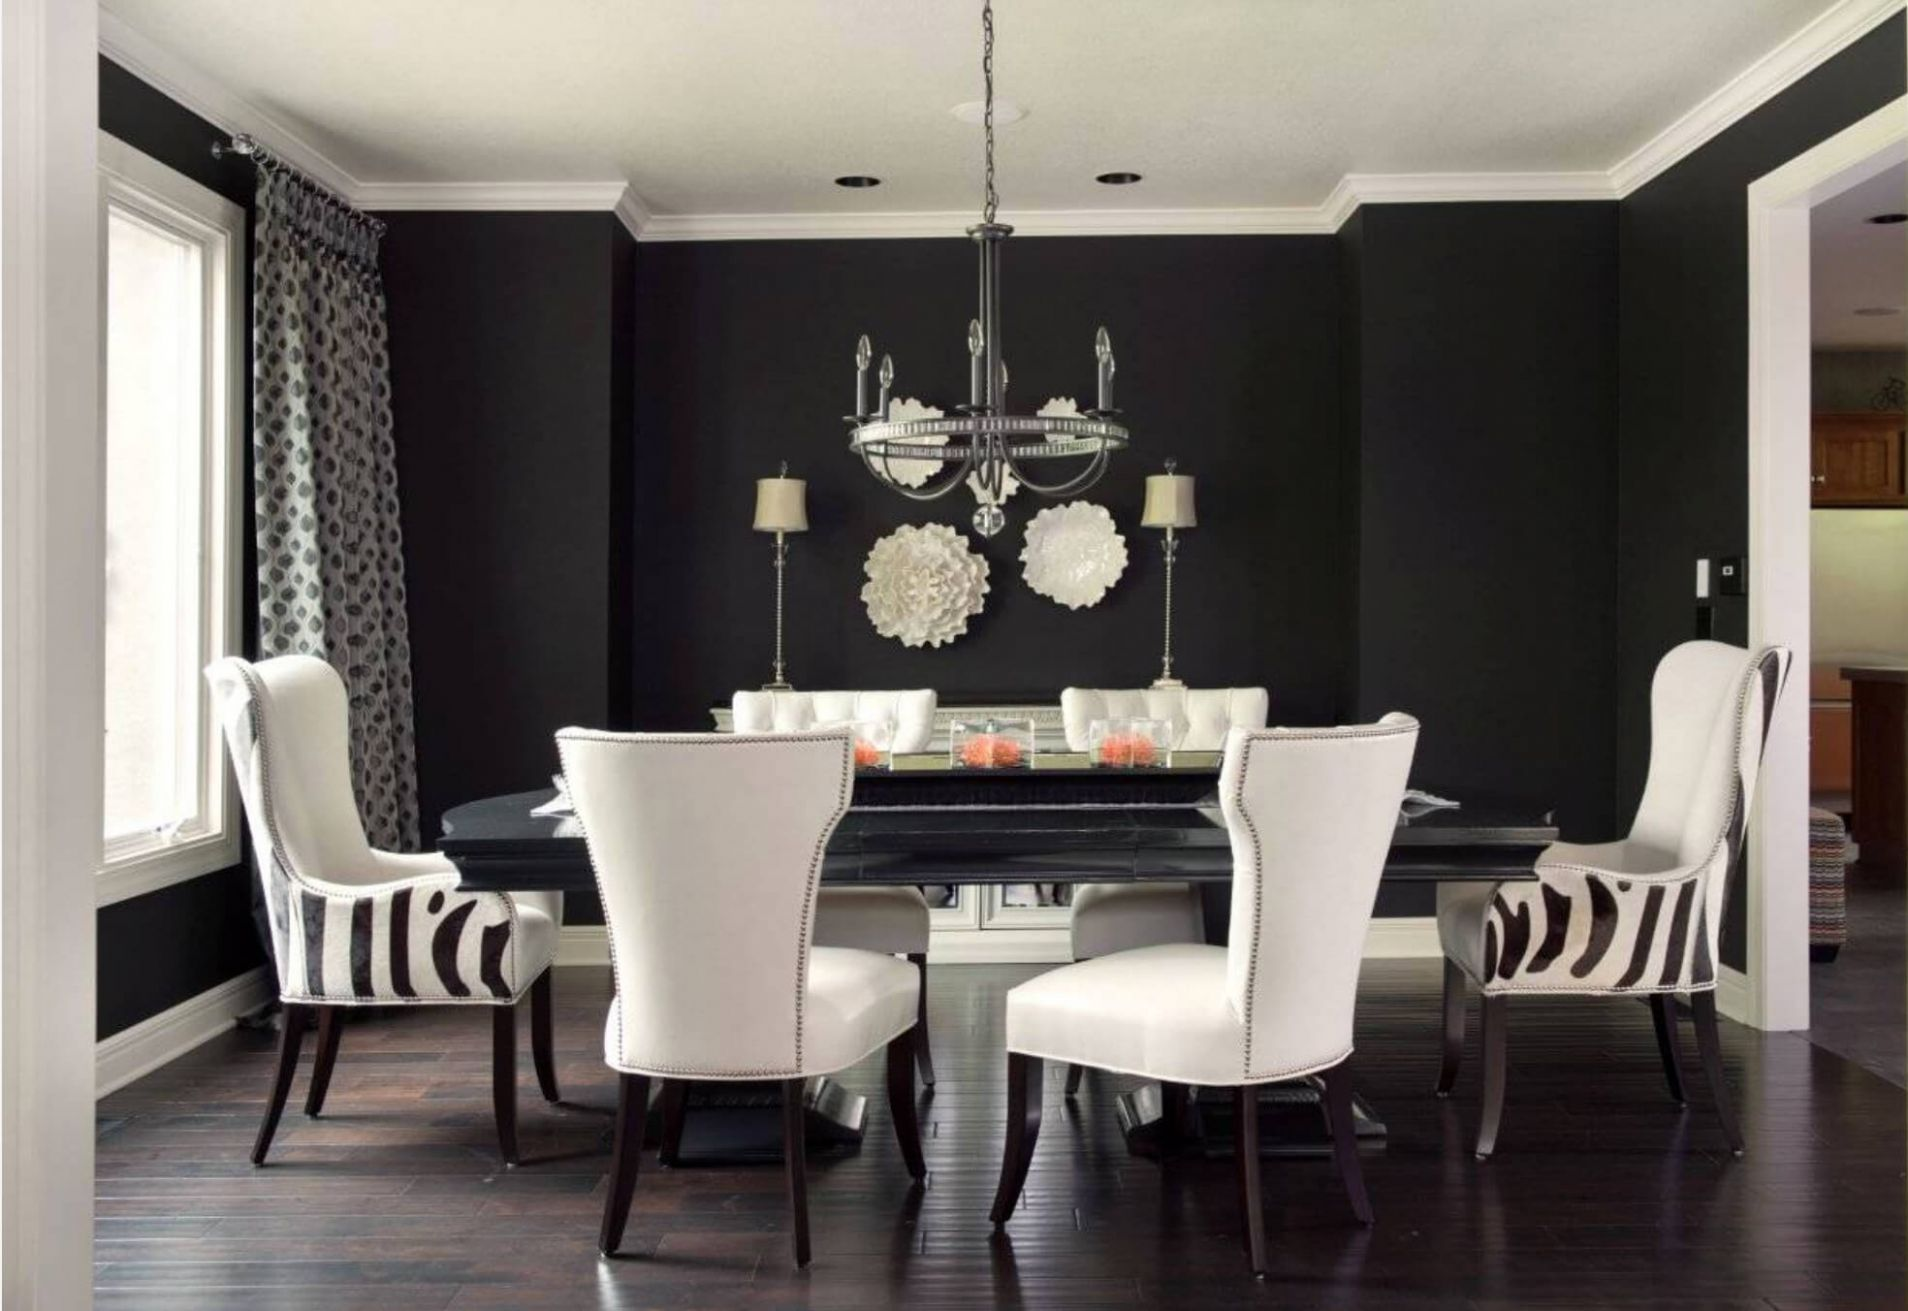 11 Creative Ideas for Dining Room Walls | Freshome